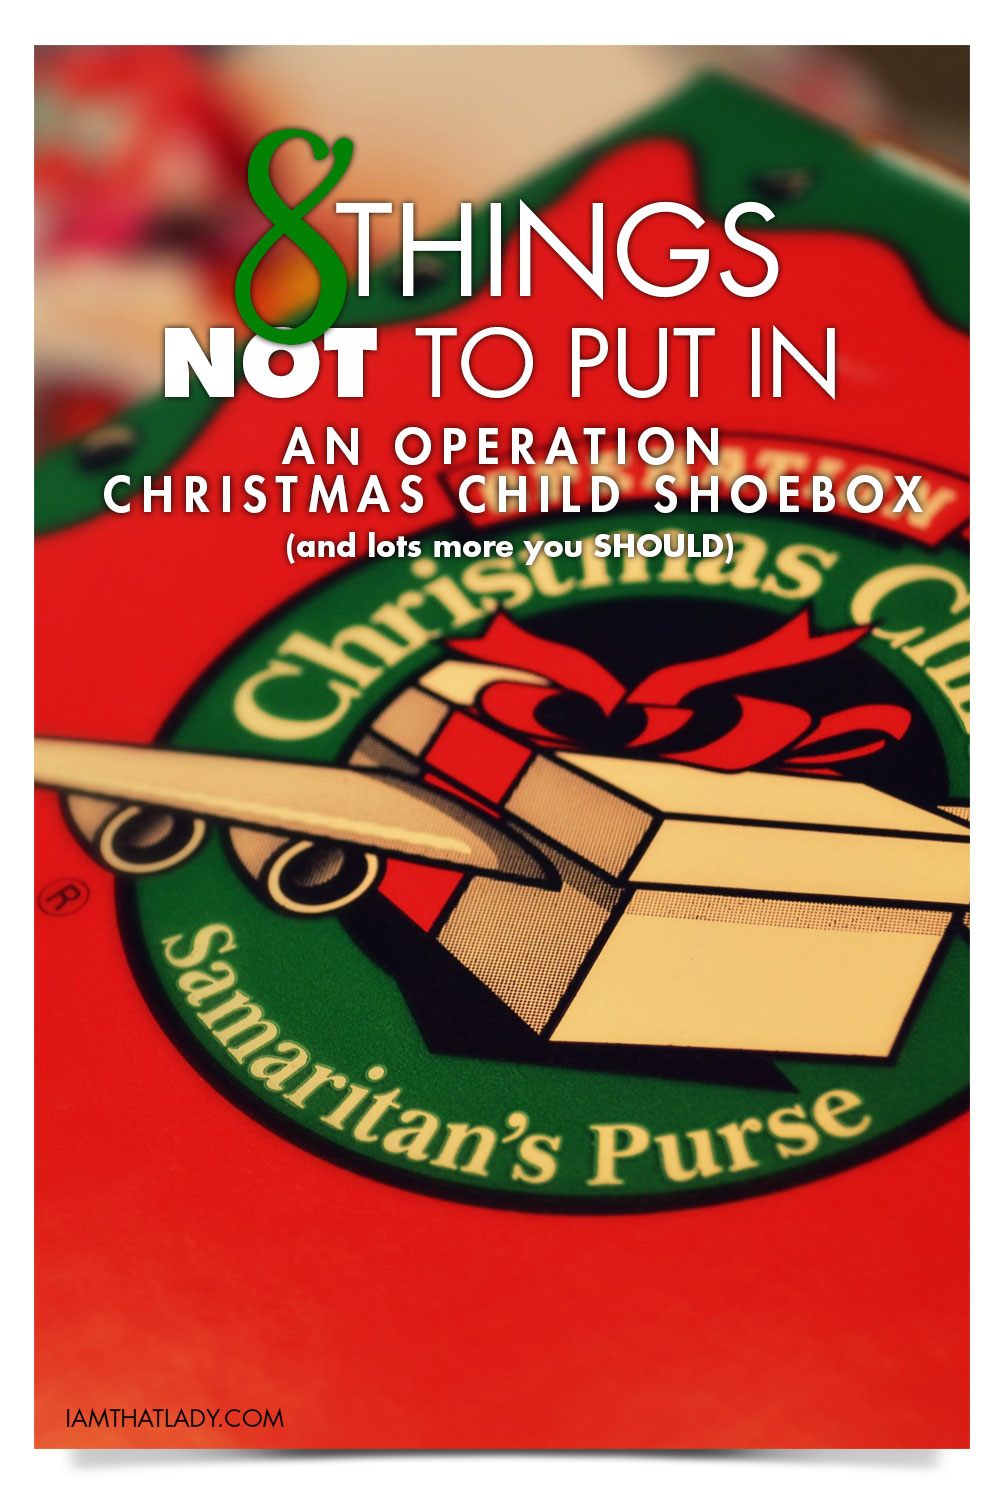 8 Things Not To Put In An Operation Christmas Child